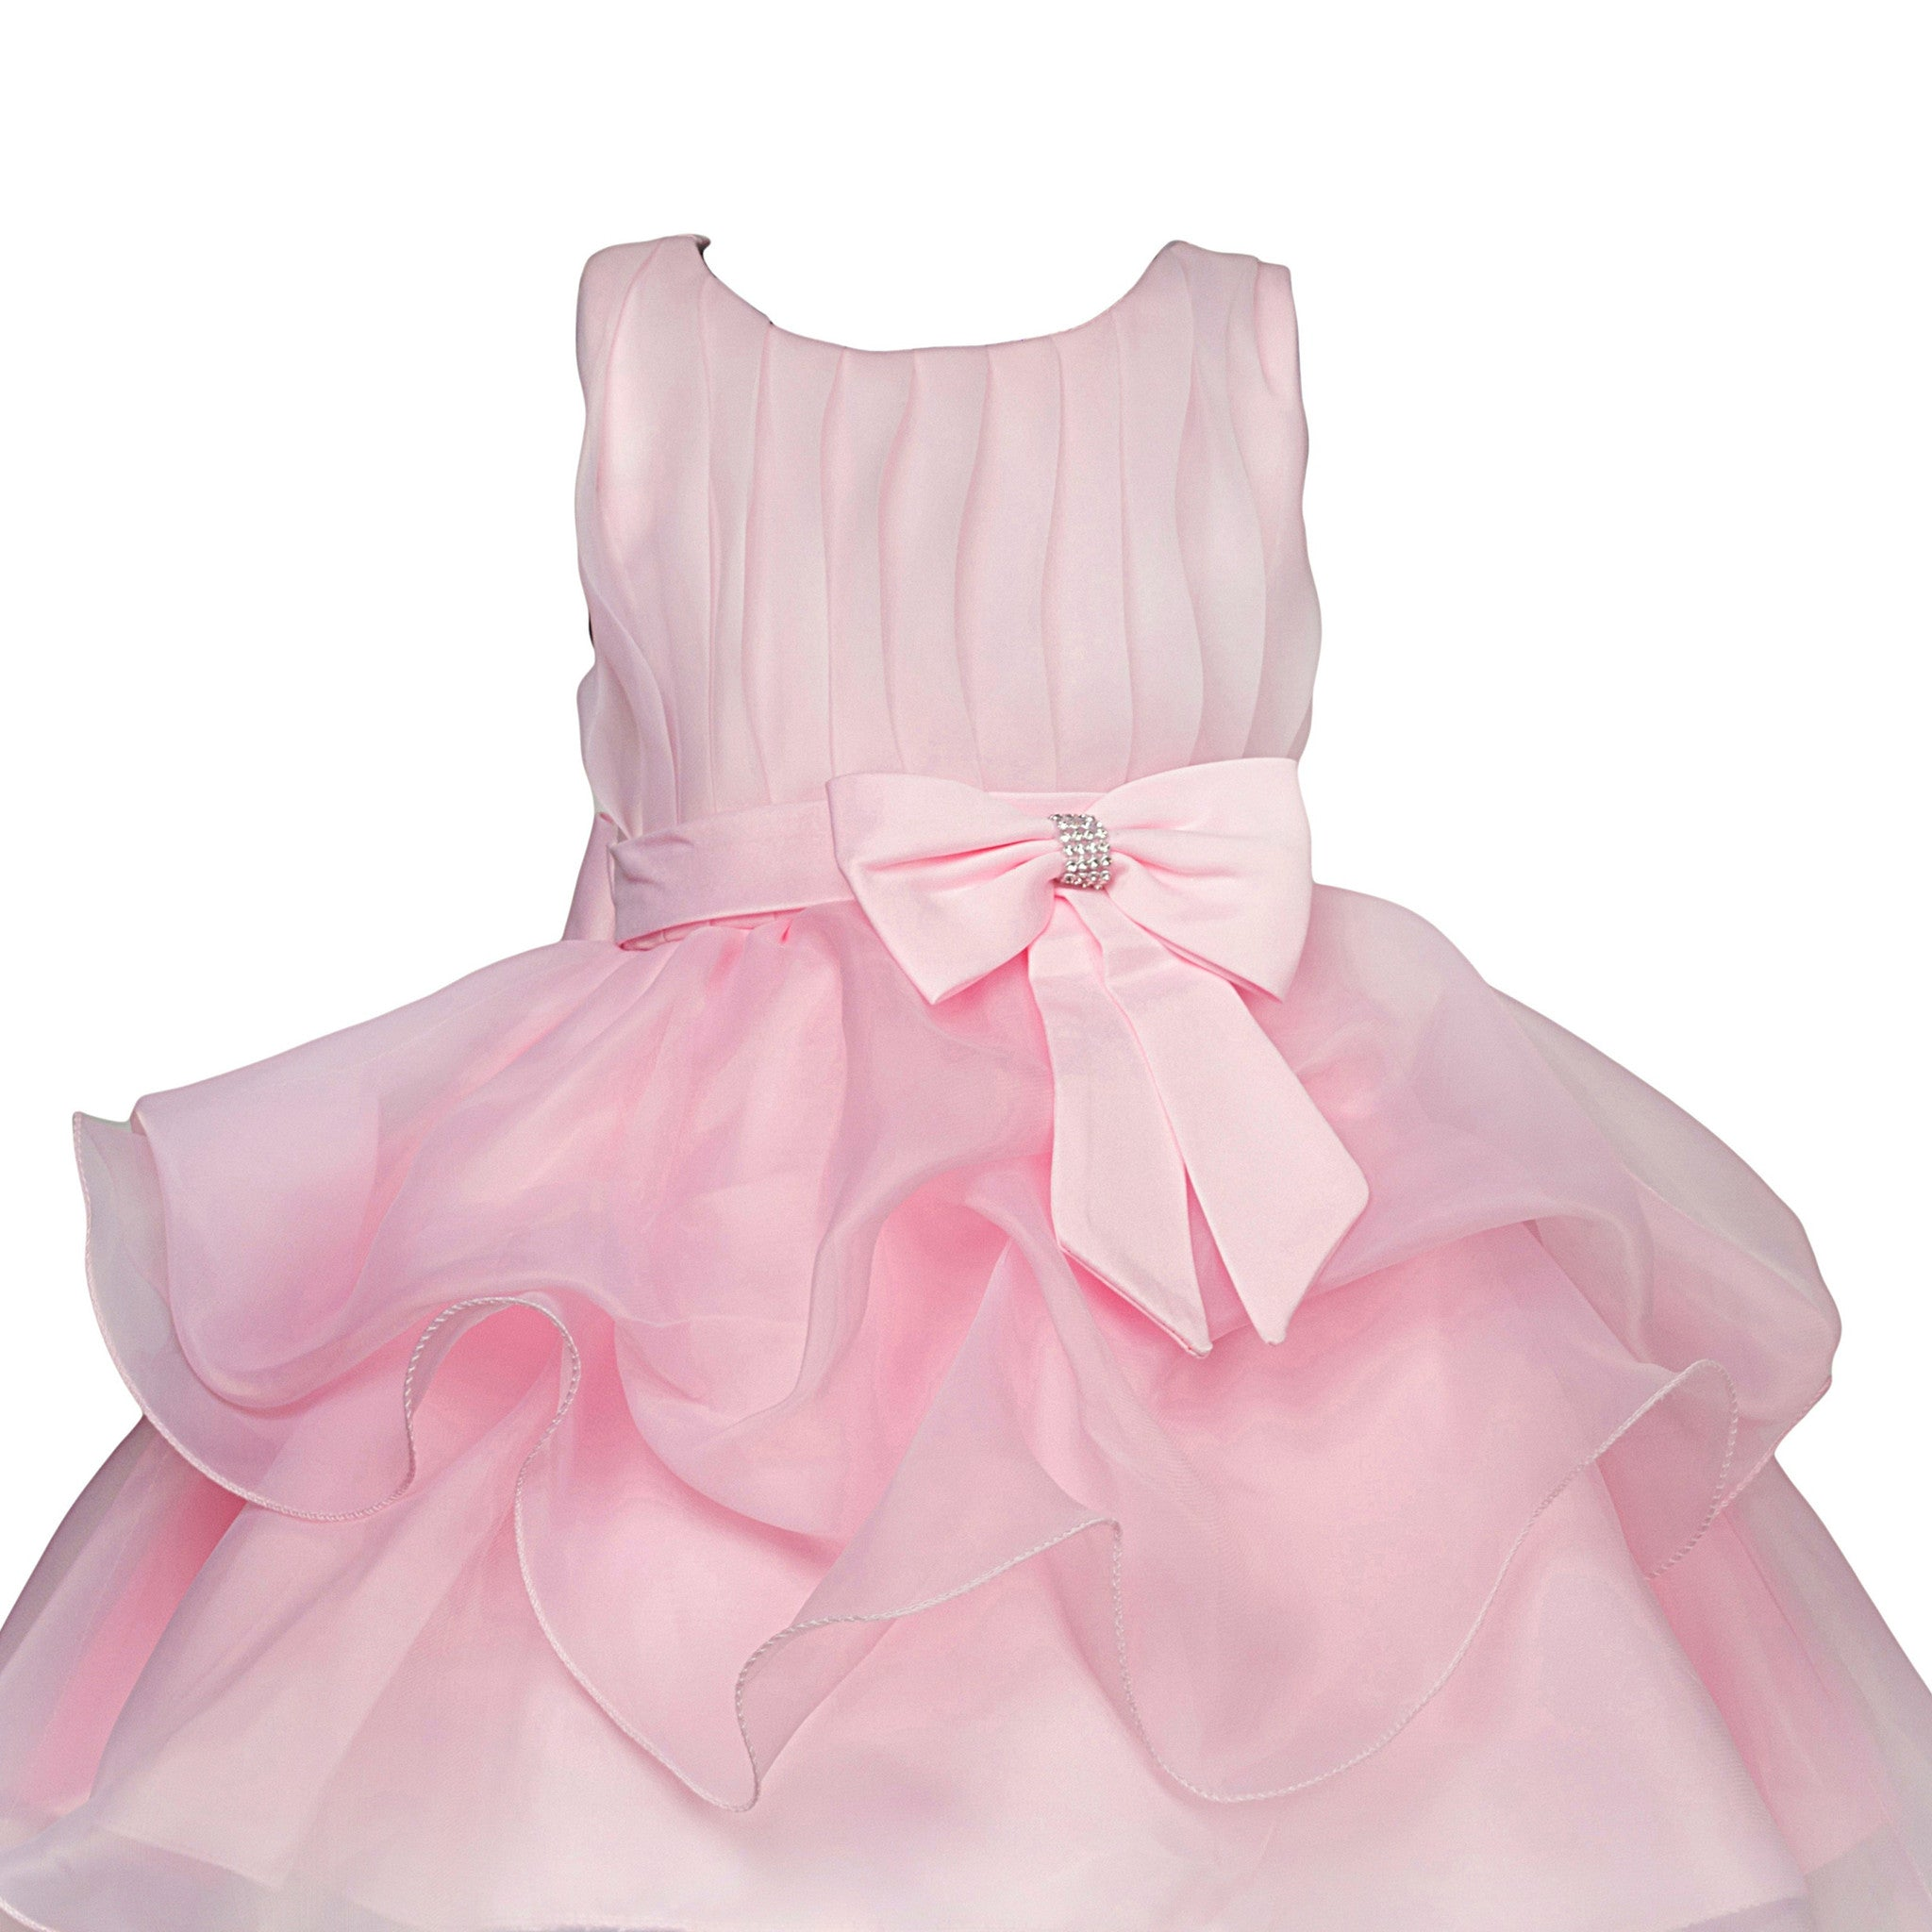 1383e6bc42 2-3 Years Old Baby Girl Party Wear Dresses, Frocks & Gowns - Coctail